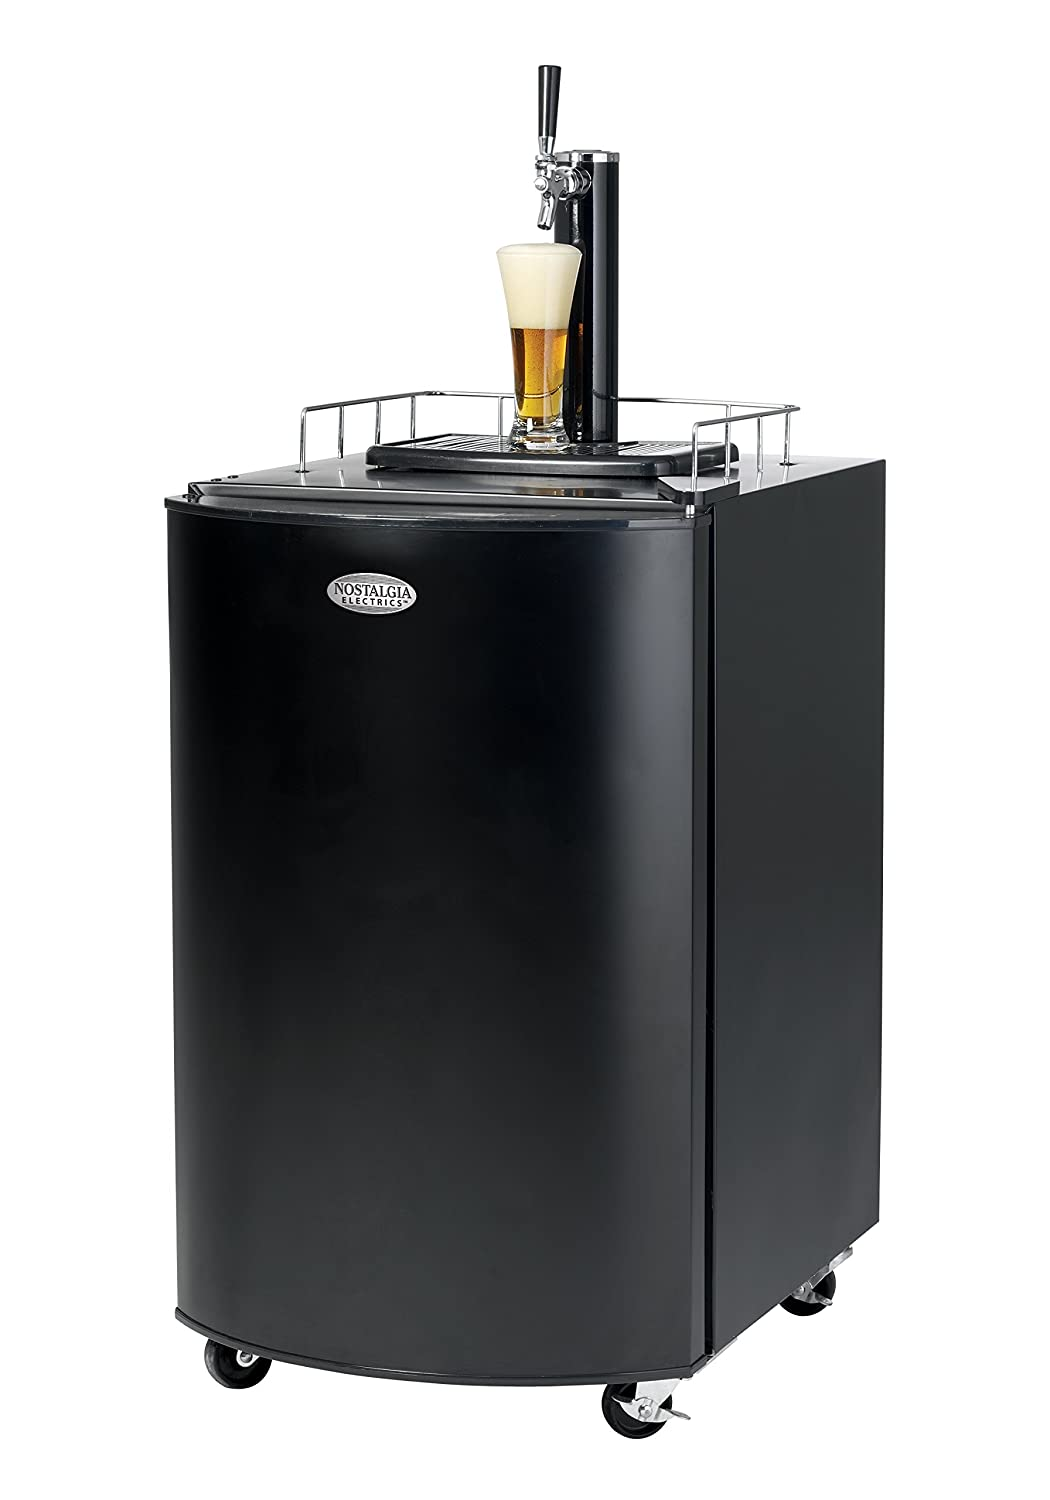 B000HJVYDQ Nostalgia KRS2100 5.1 Cu.Ft. Full Size Kegorator Draft Beer Dispenser 71aGbXYK89L